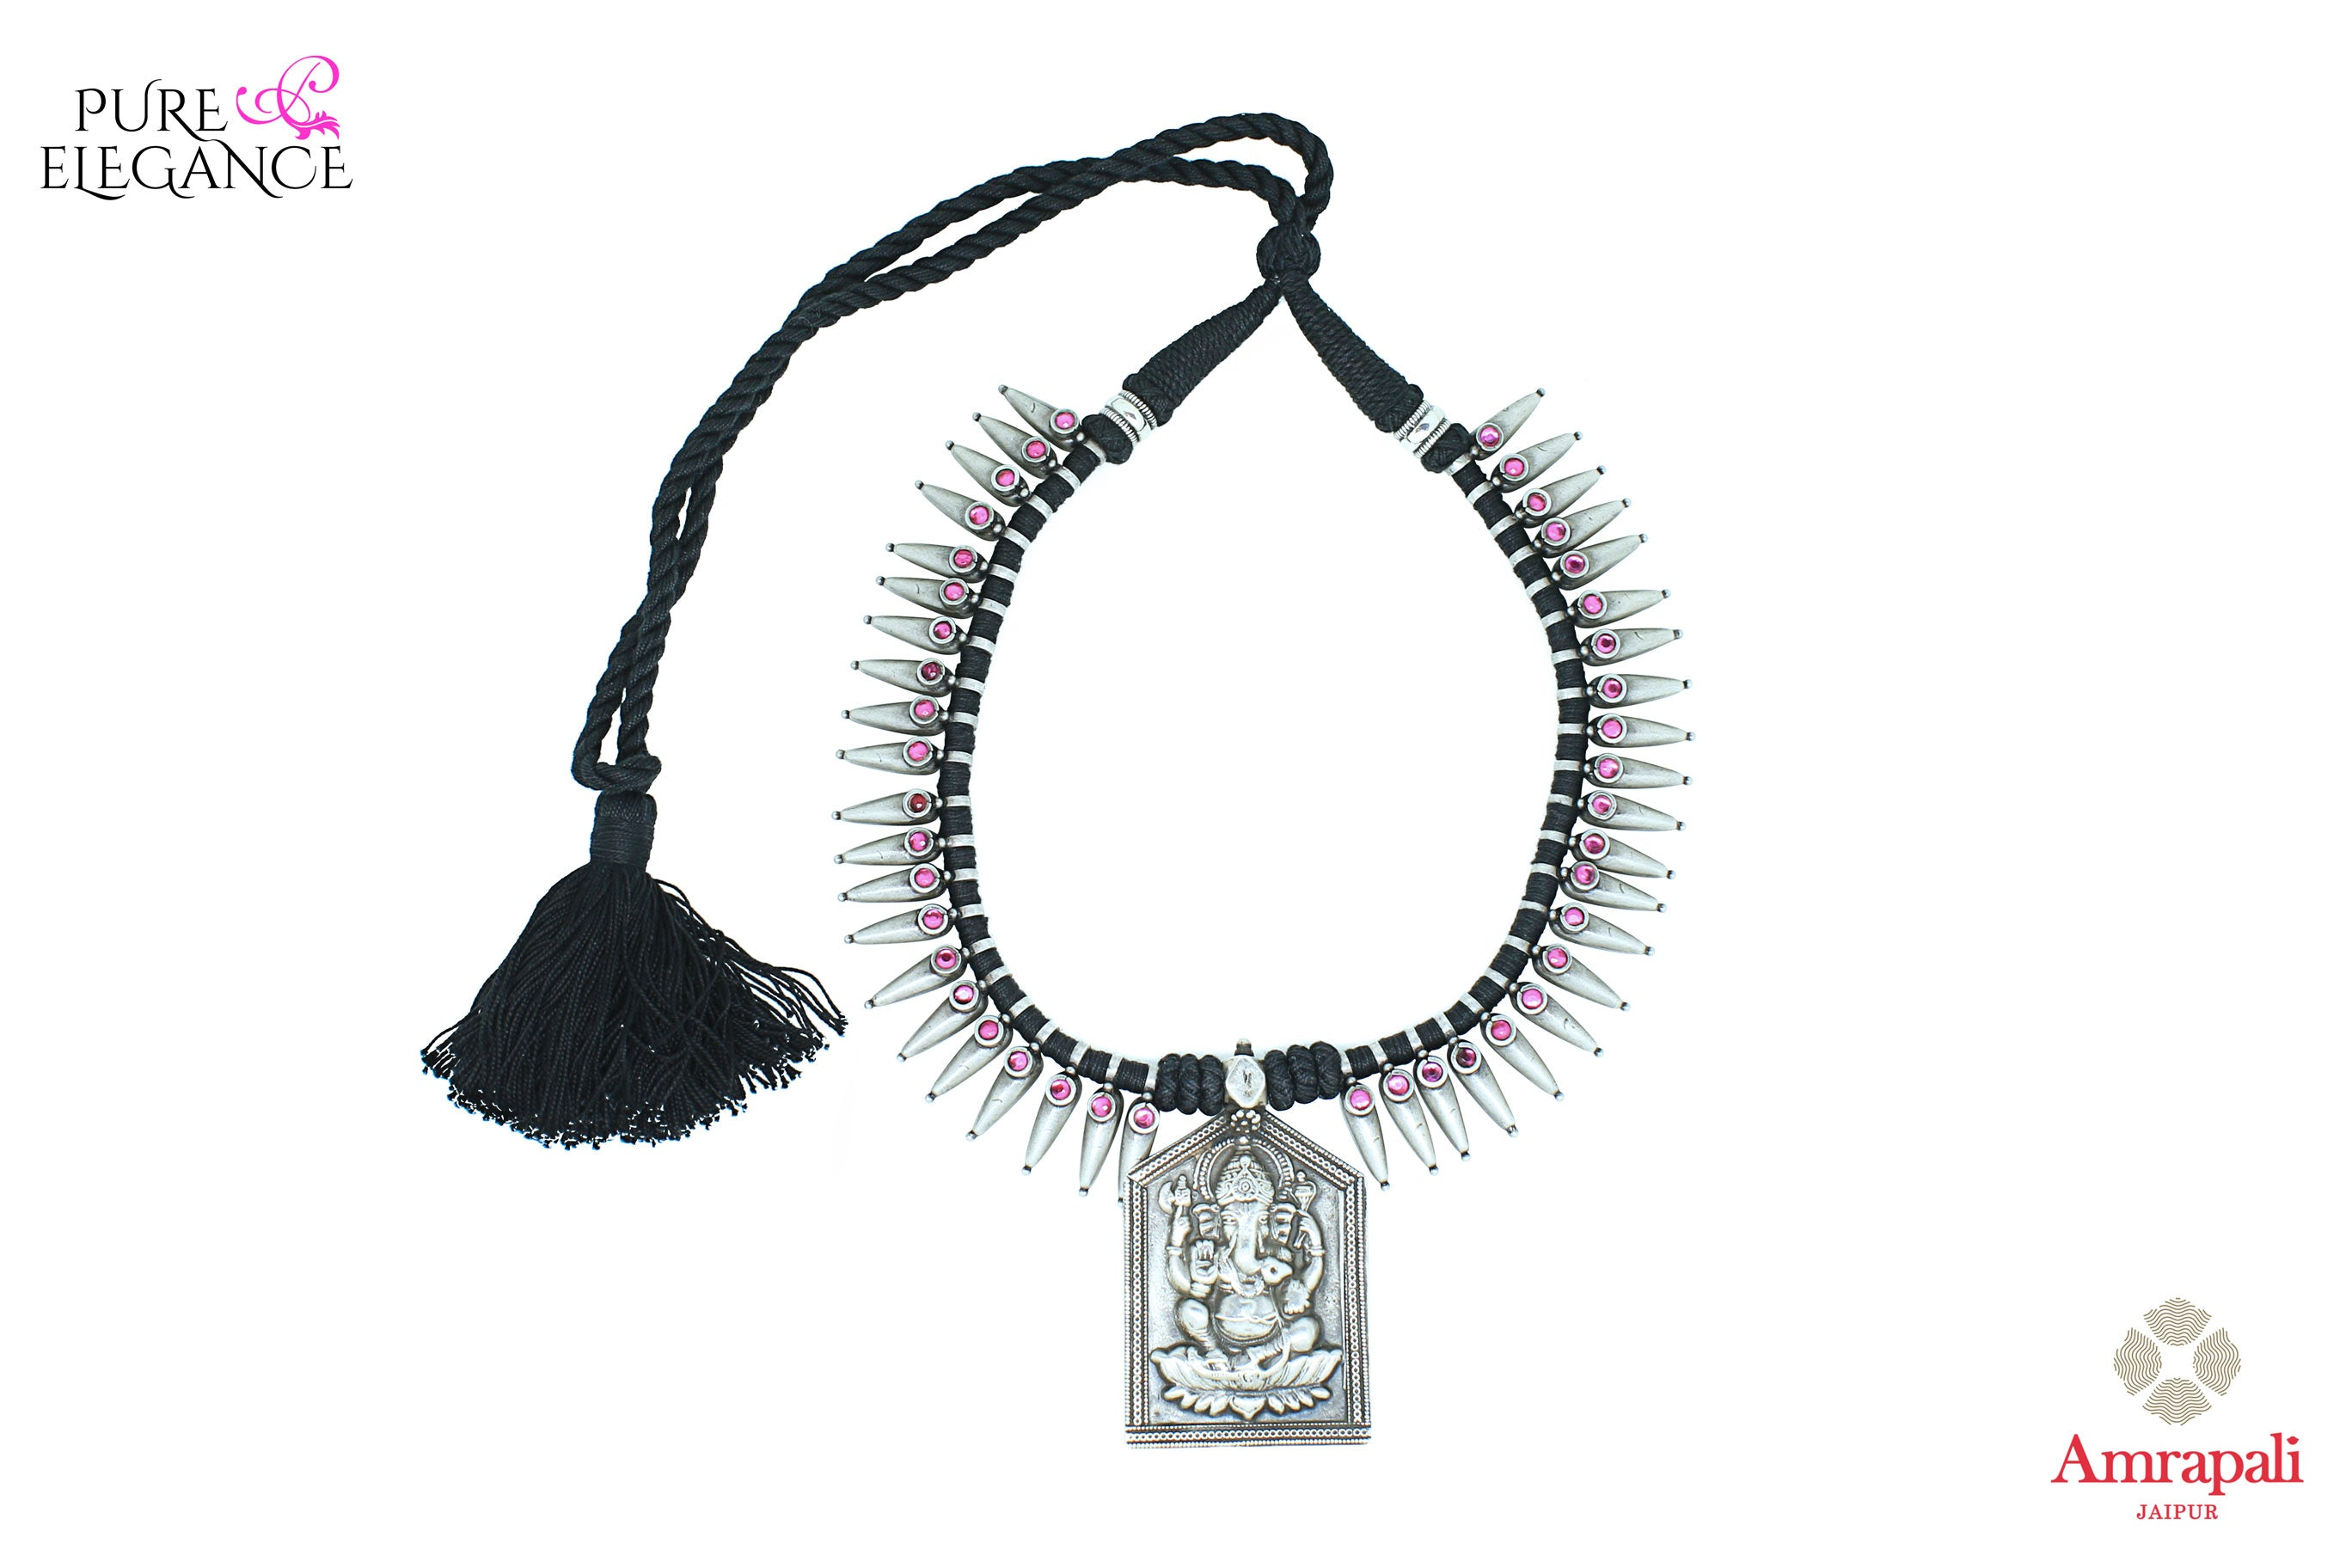 Buy antique silver thread necklace online in USA with Lord Ganesha pendant. Get your hands on an alluring range of Indian silver jewelry from Amrapali in USA. Add extra edge to your ethnic look with beautiful silver gold plated jewelry available at Pure Elegance Indian fashion store in USA.-front view